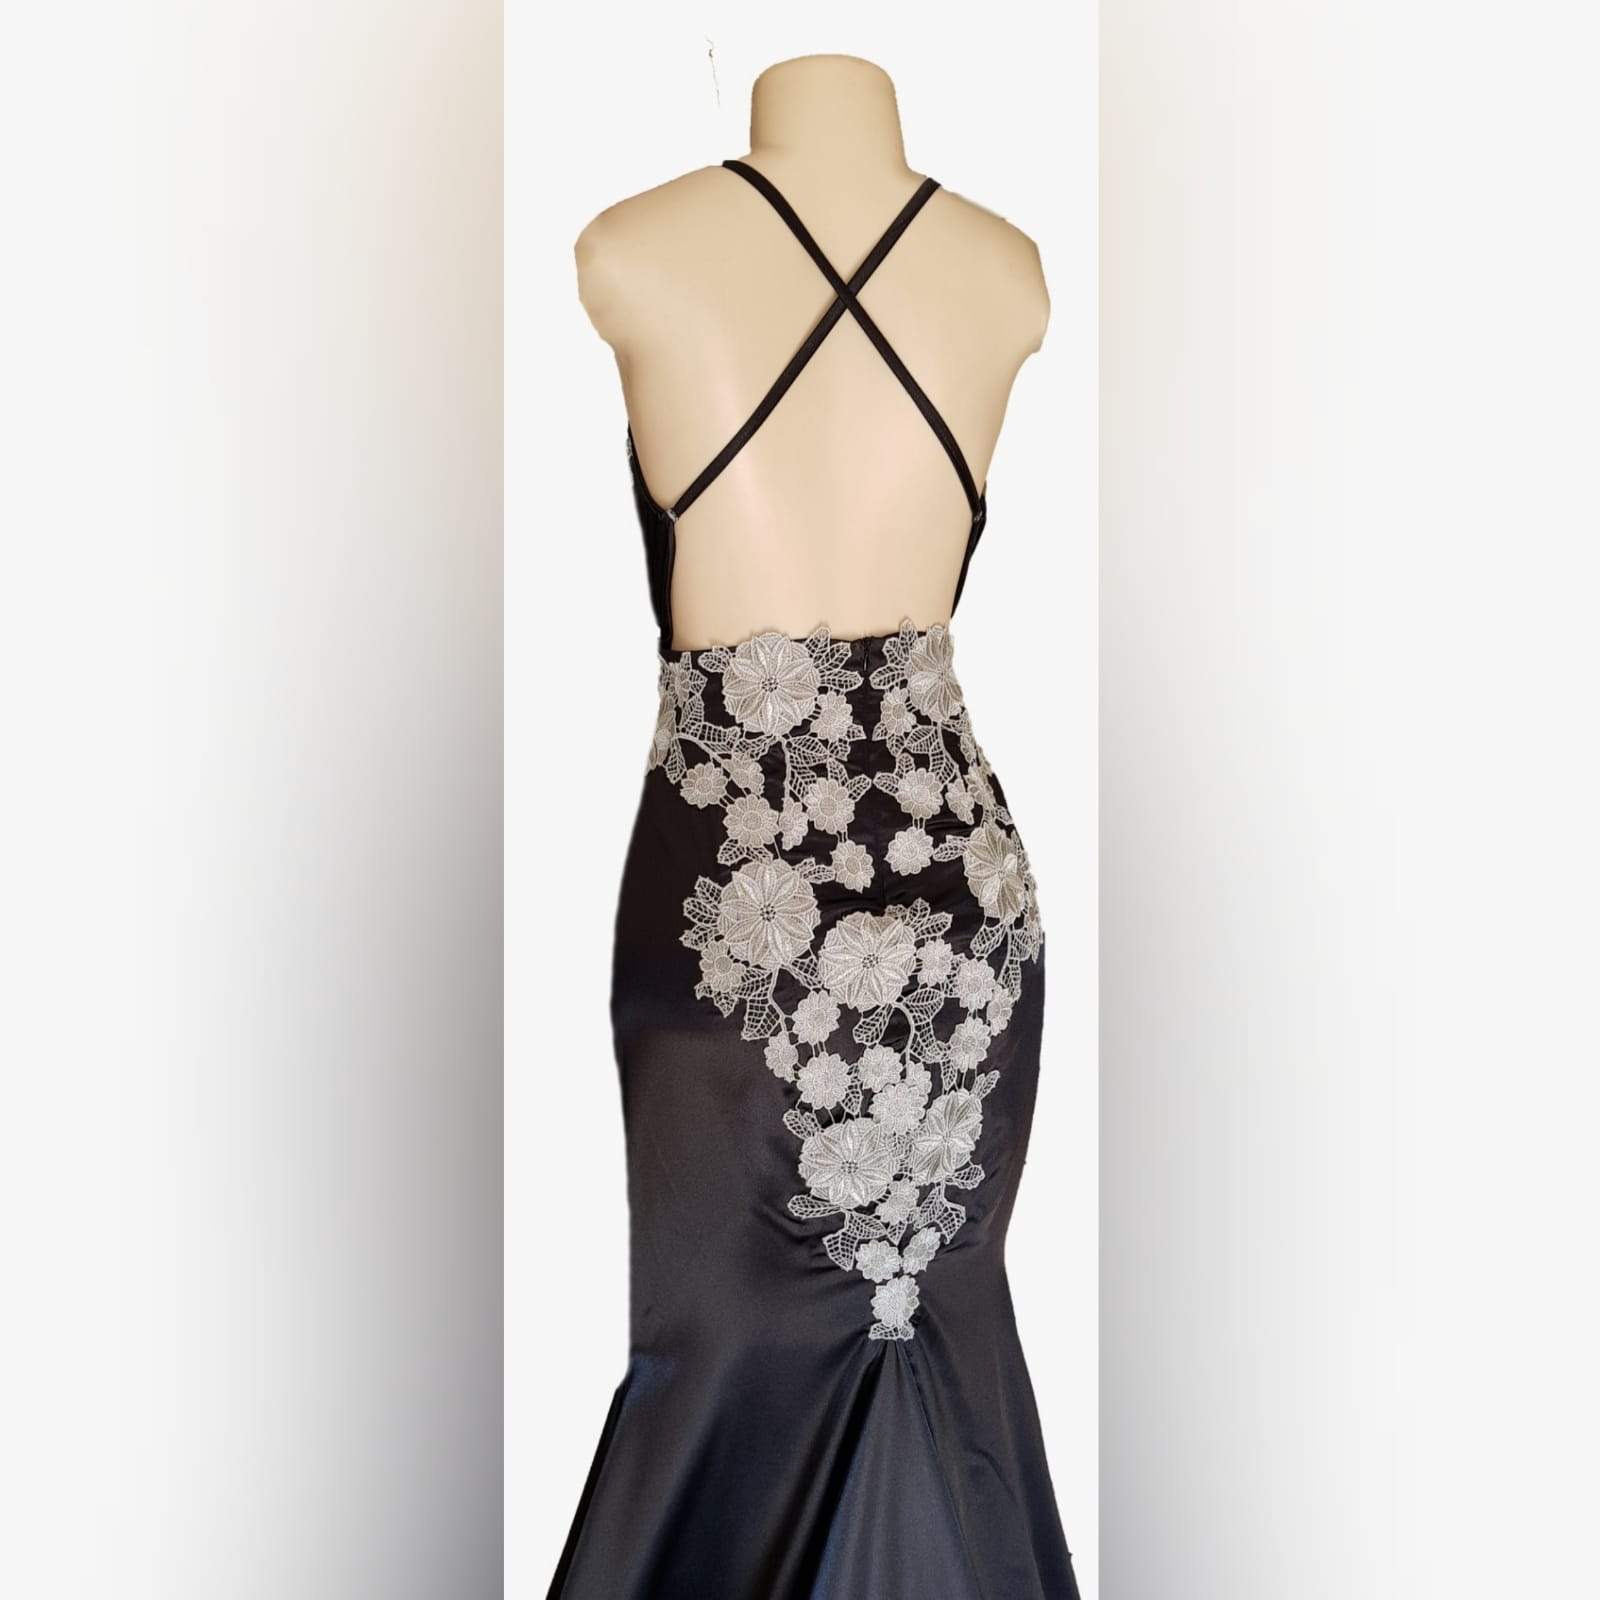 Black satin long fitted prom dress 7 a black satin long fitted prom dress with silver lace detail, will add an elegance to your special event.